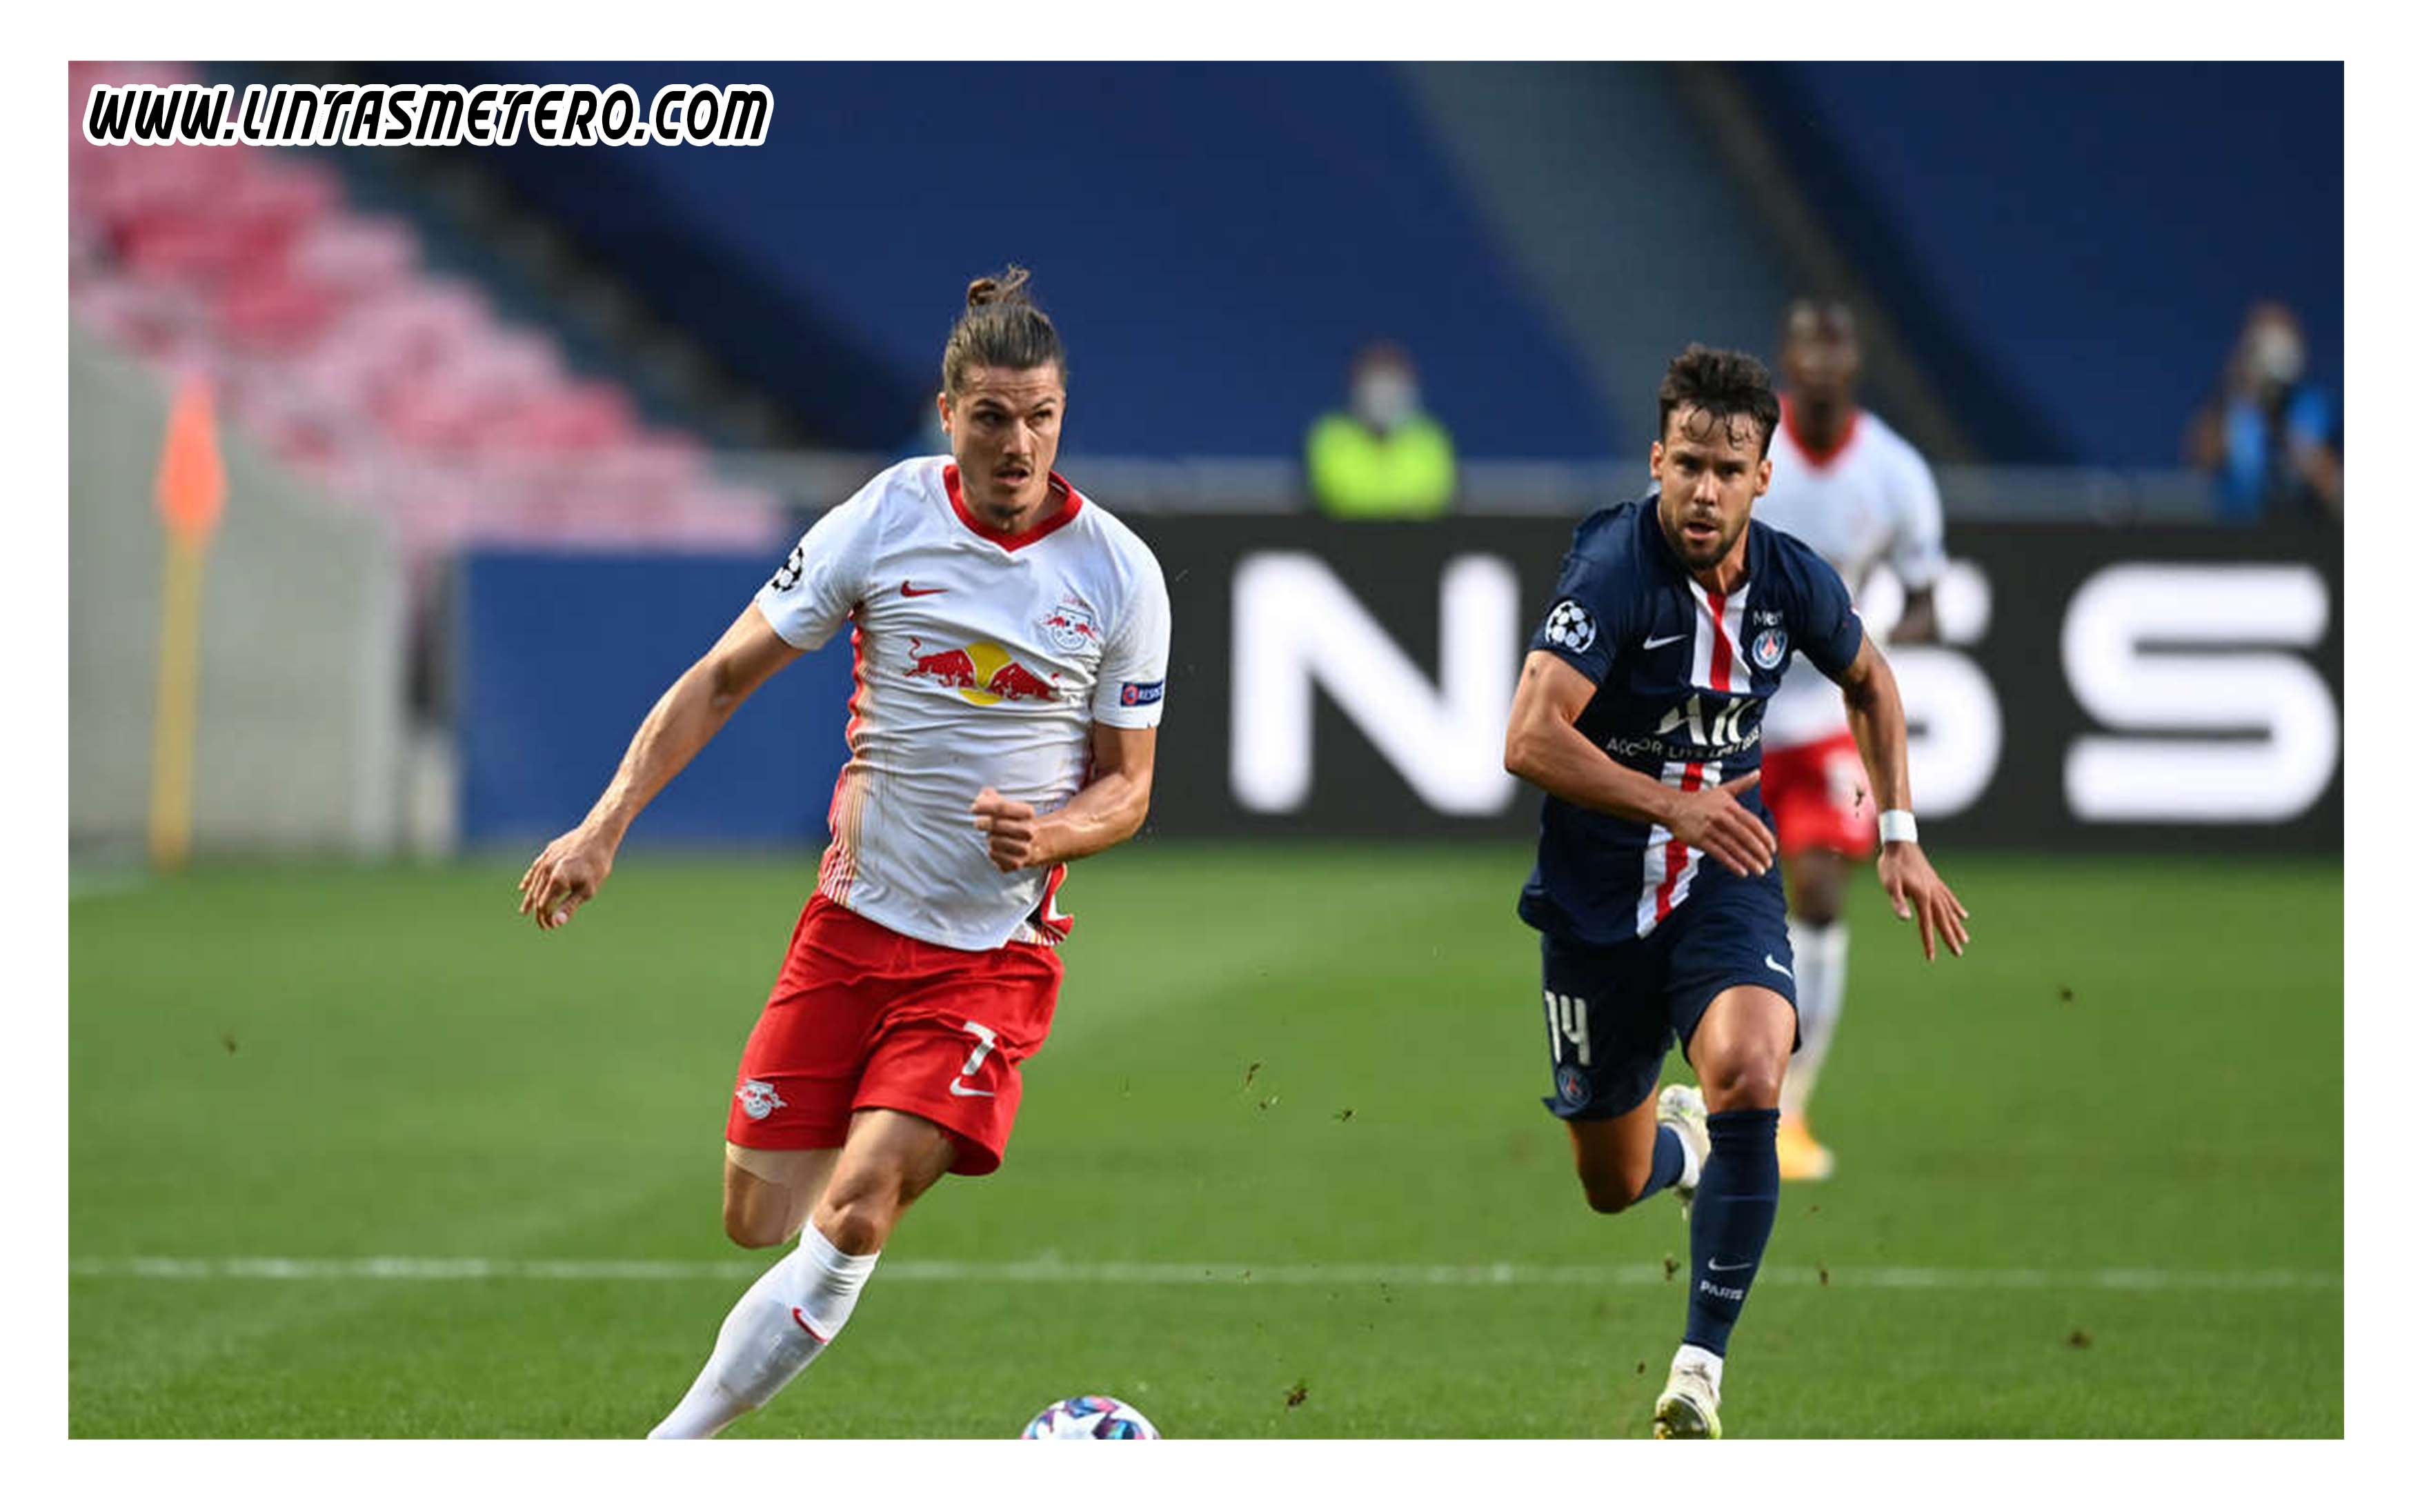 Paris Saint Germain vs RB Leipzig Prediksi Liga Champions 2020/2021